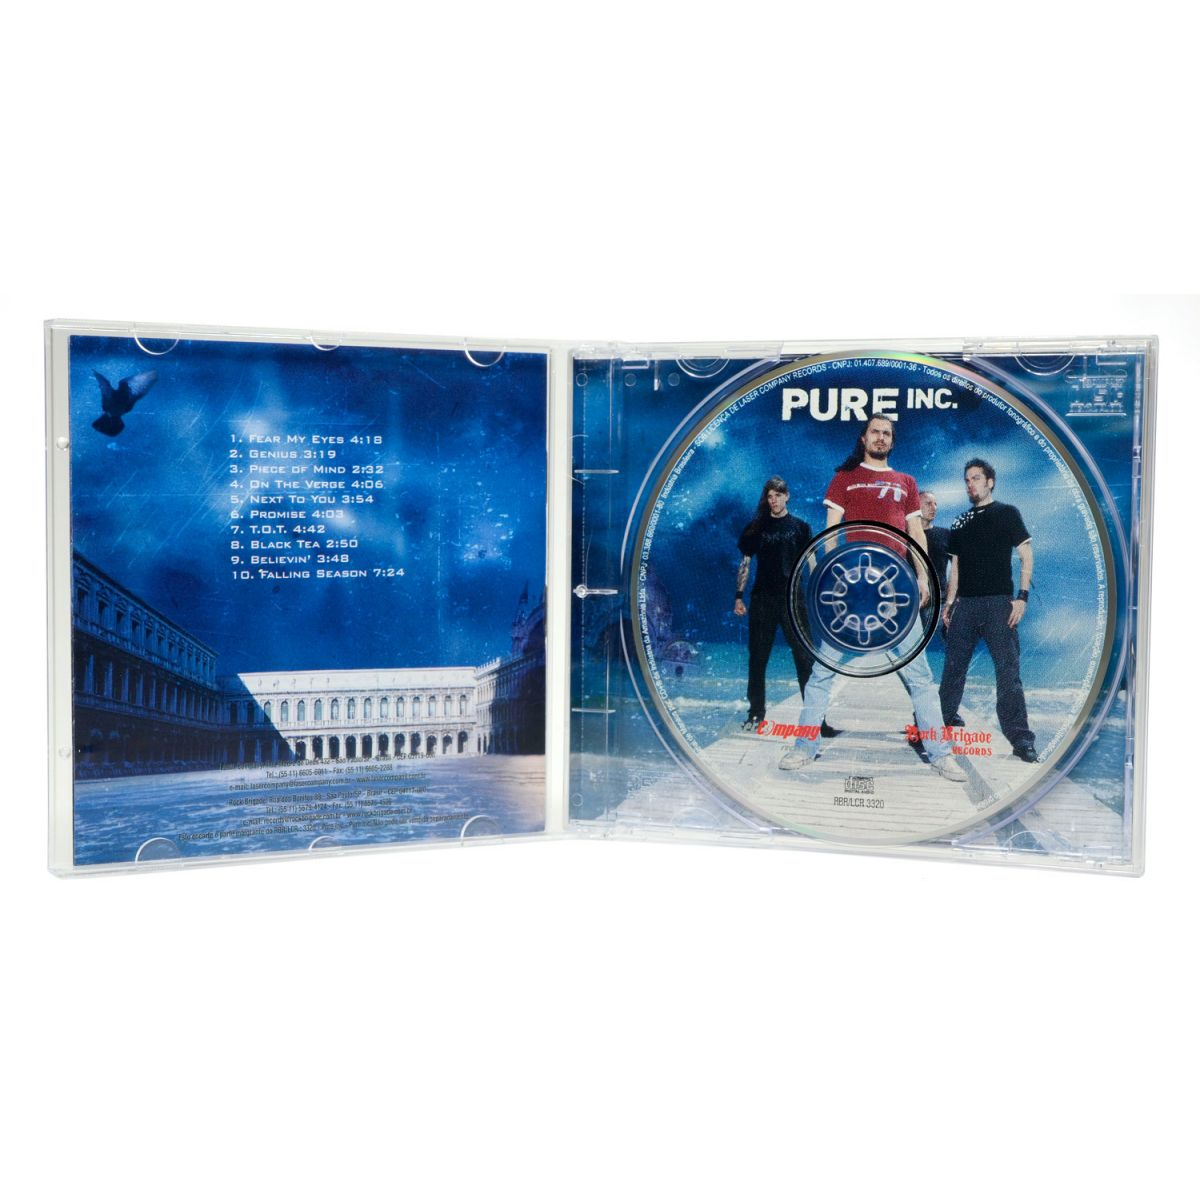 CD Pure Inc - Pure Inc - Lacrado